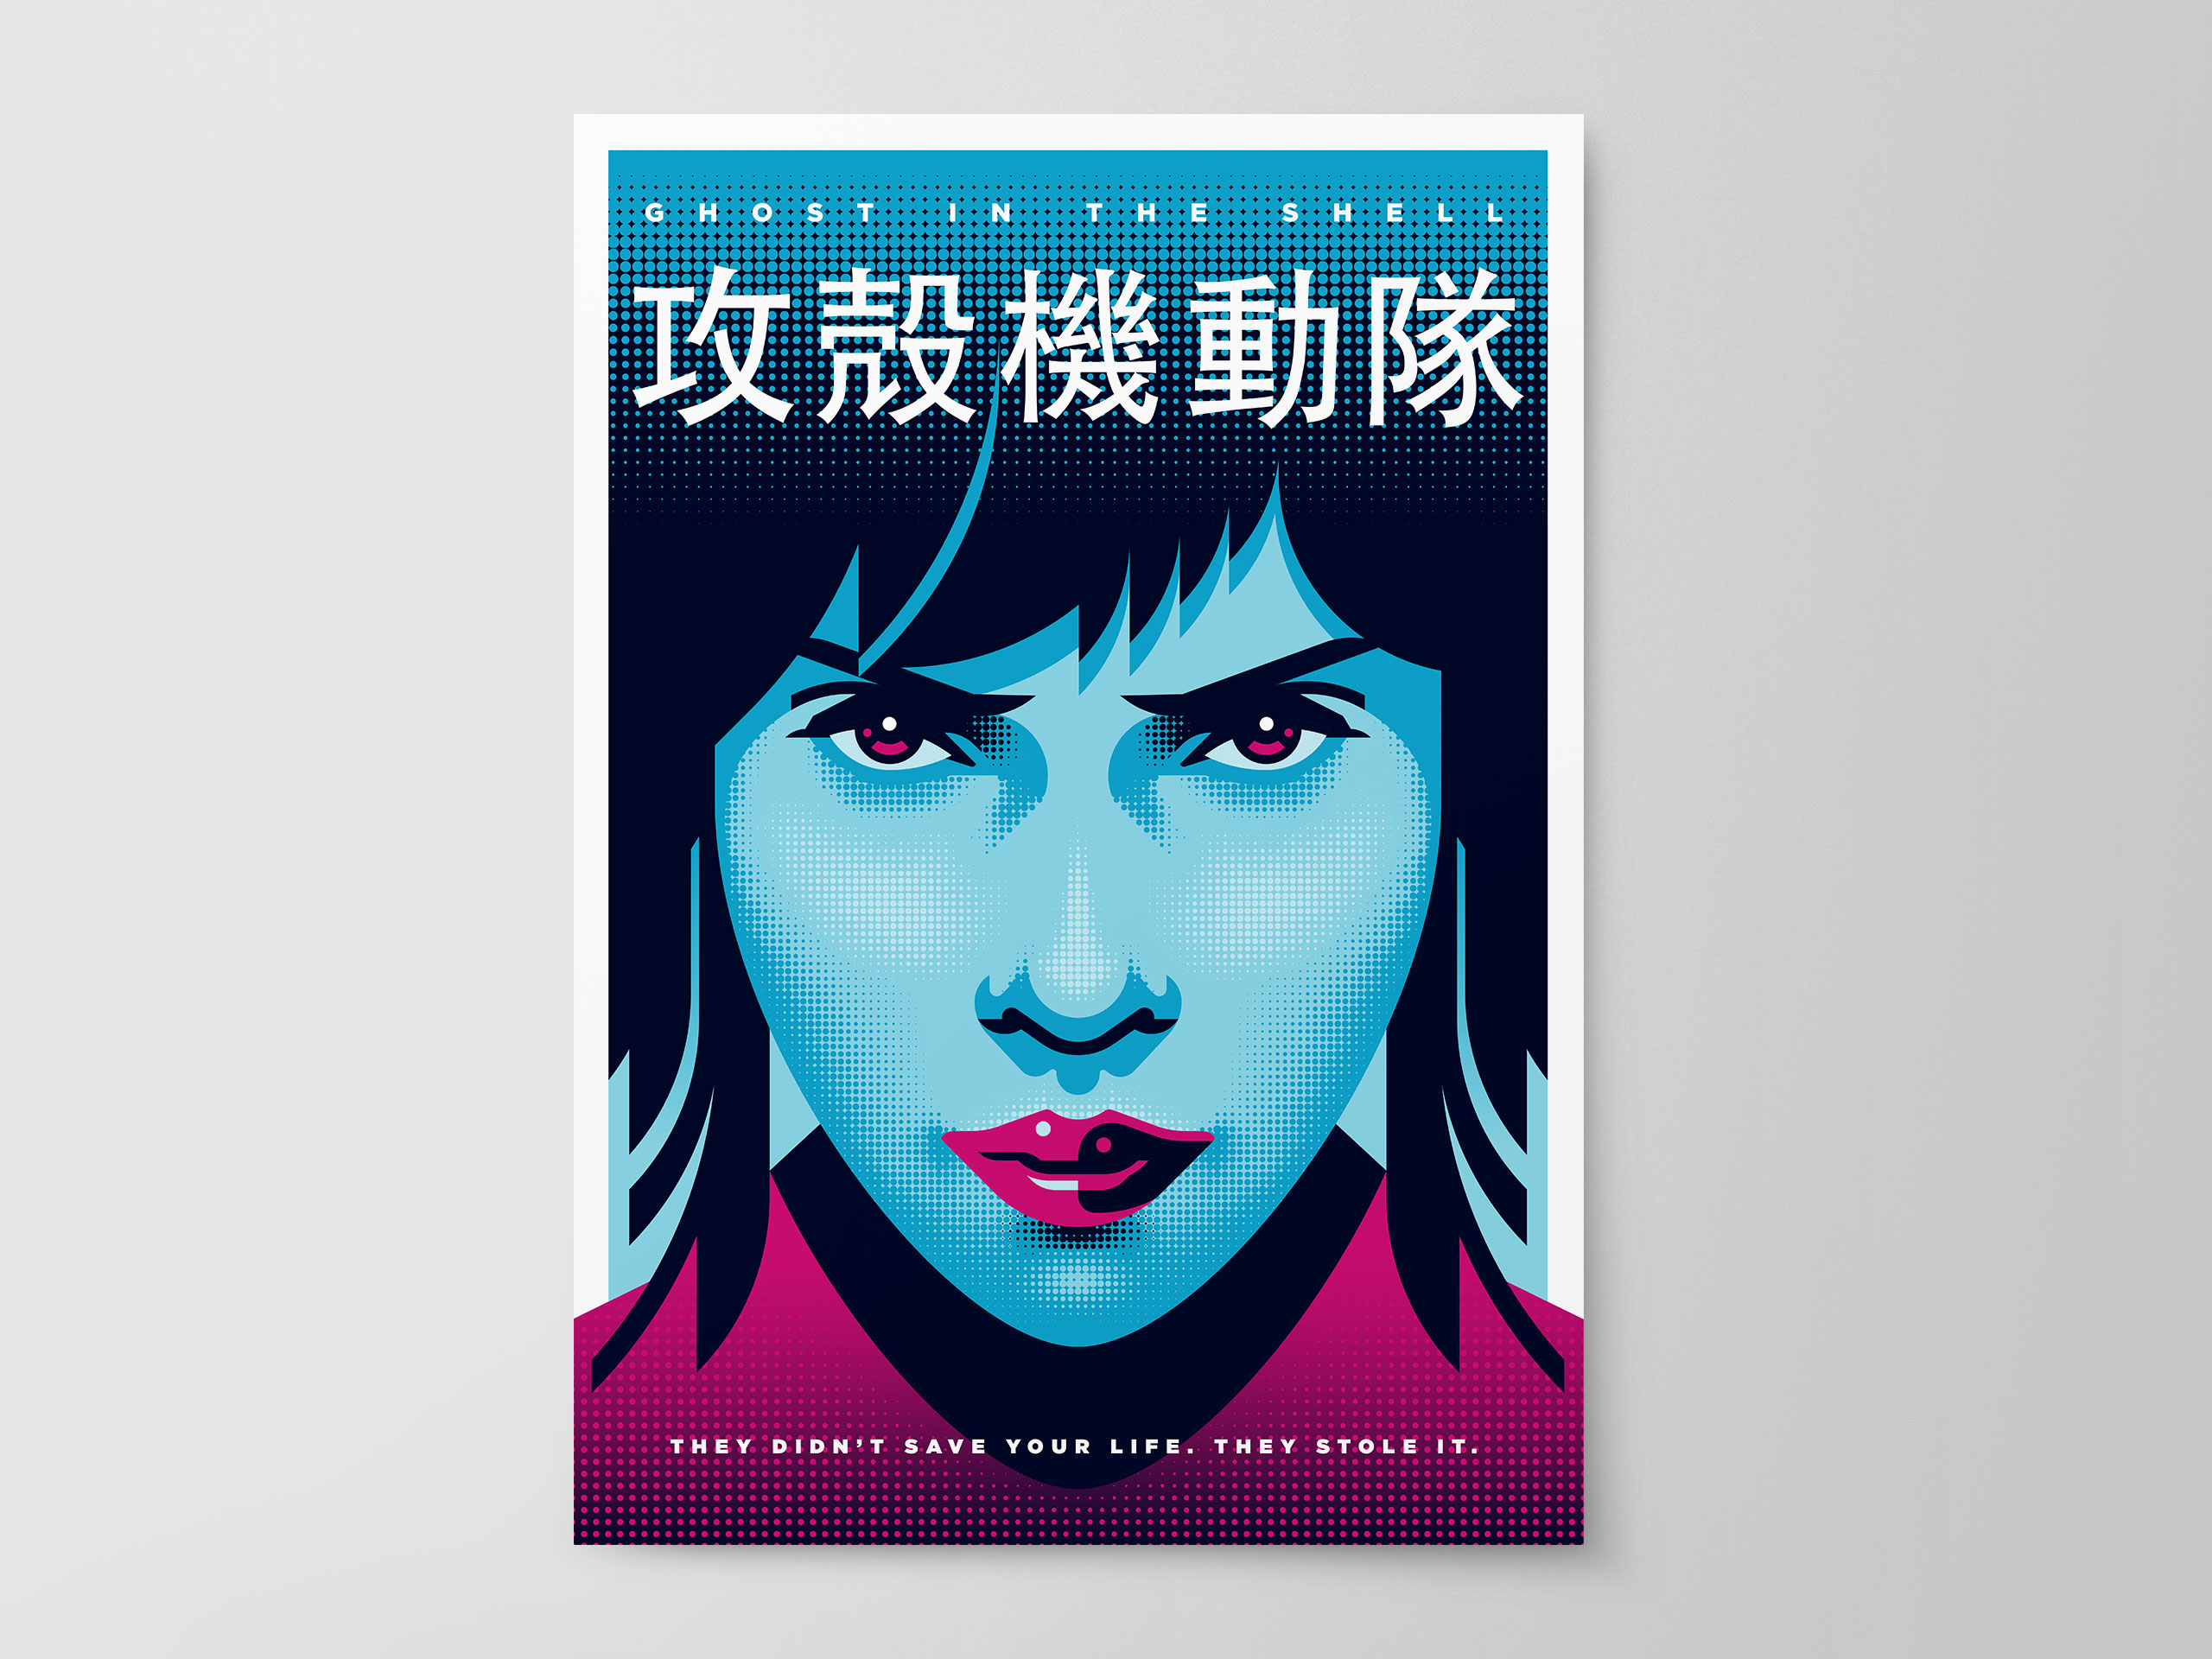 Ghost In The Shell Movie Poster by Dan Forster